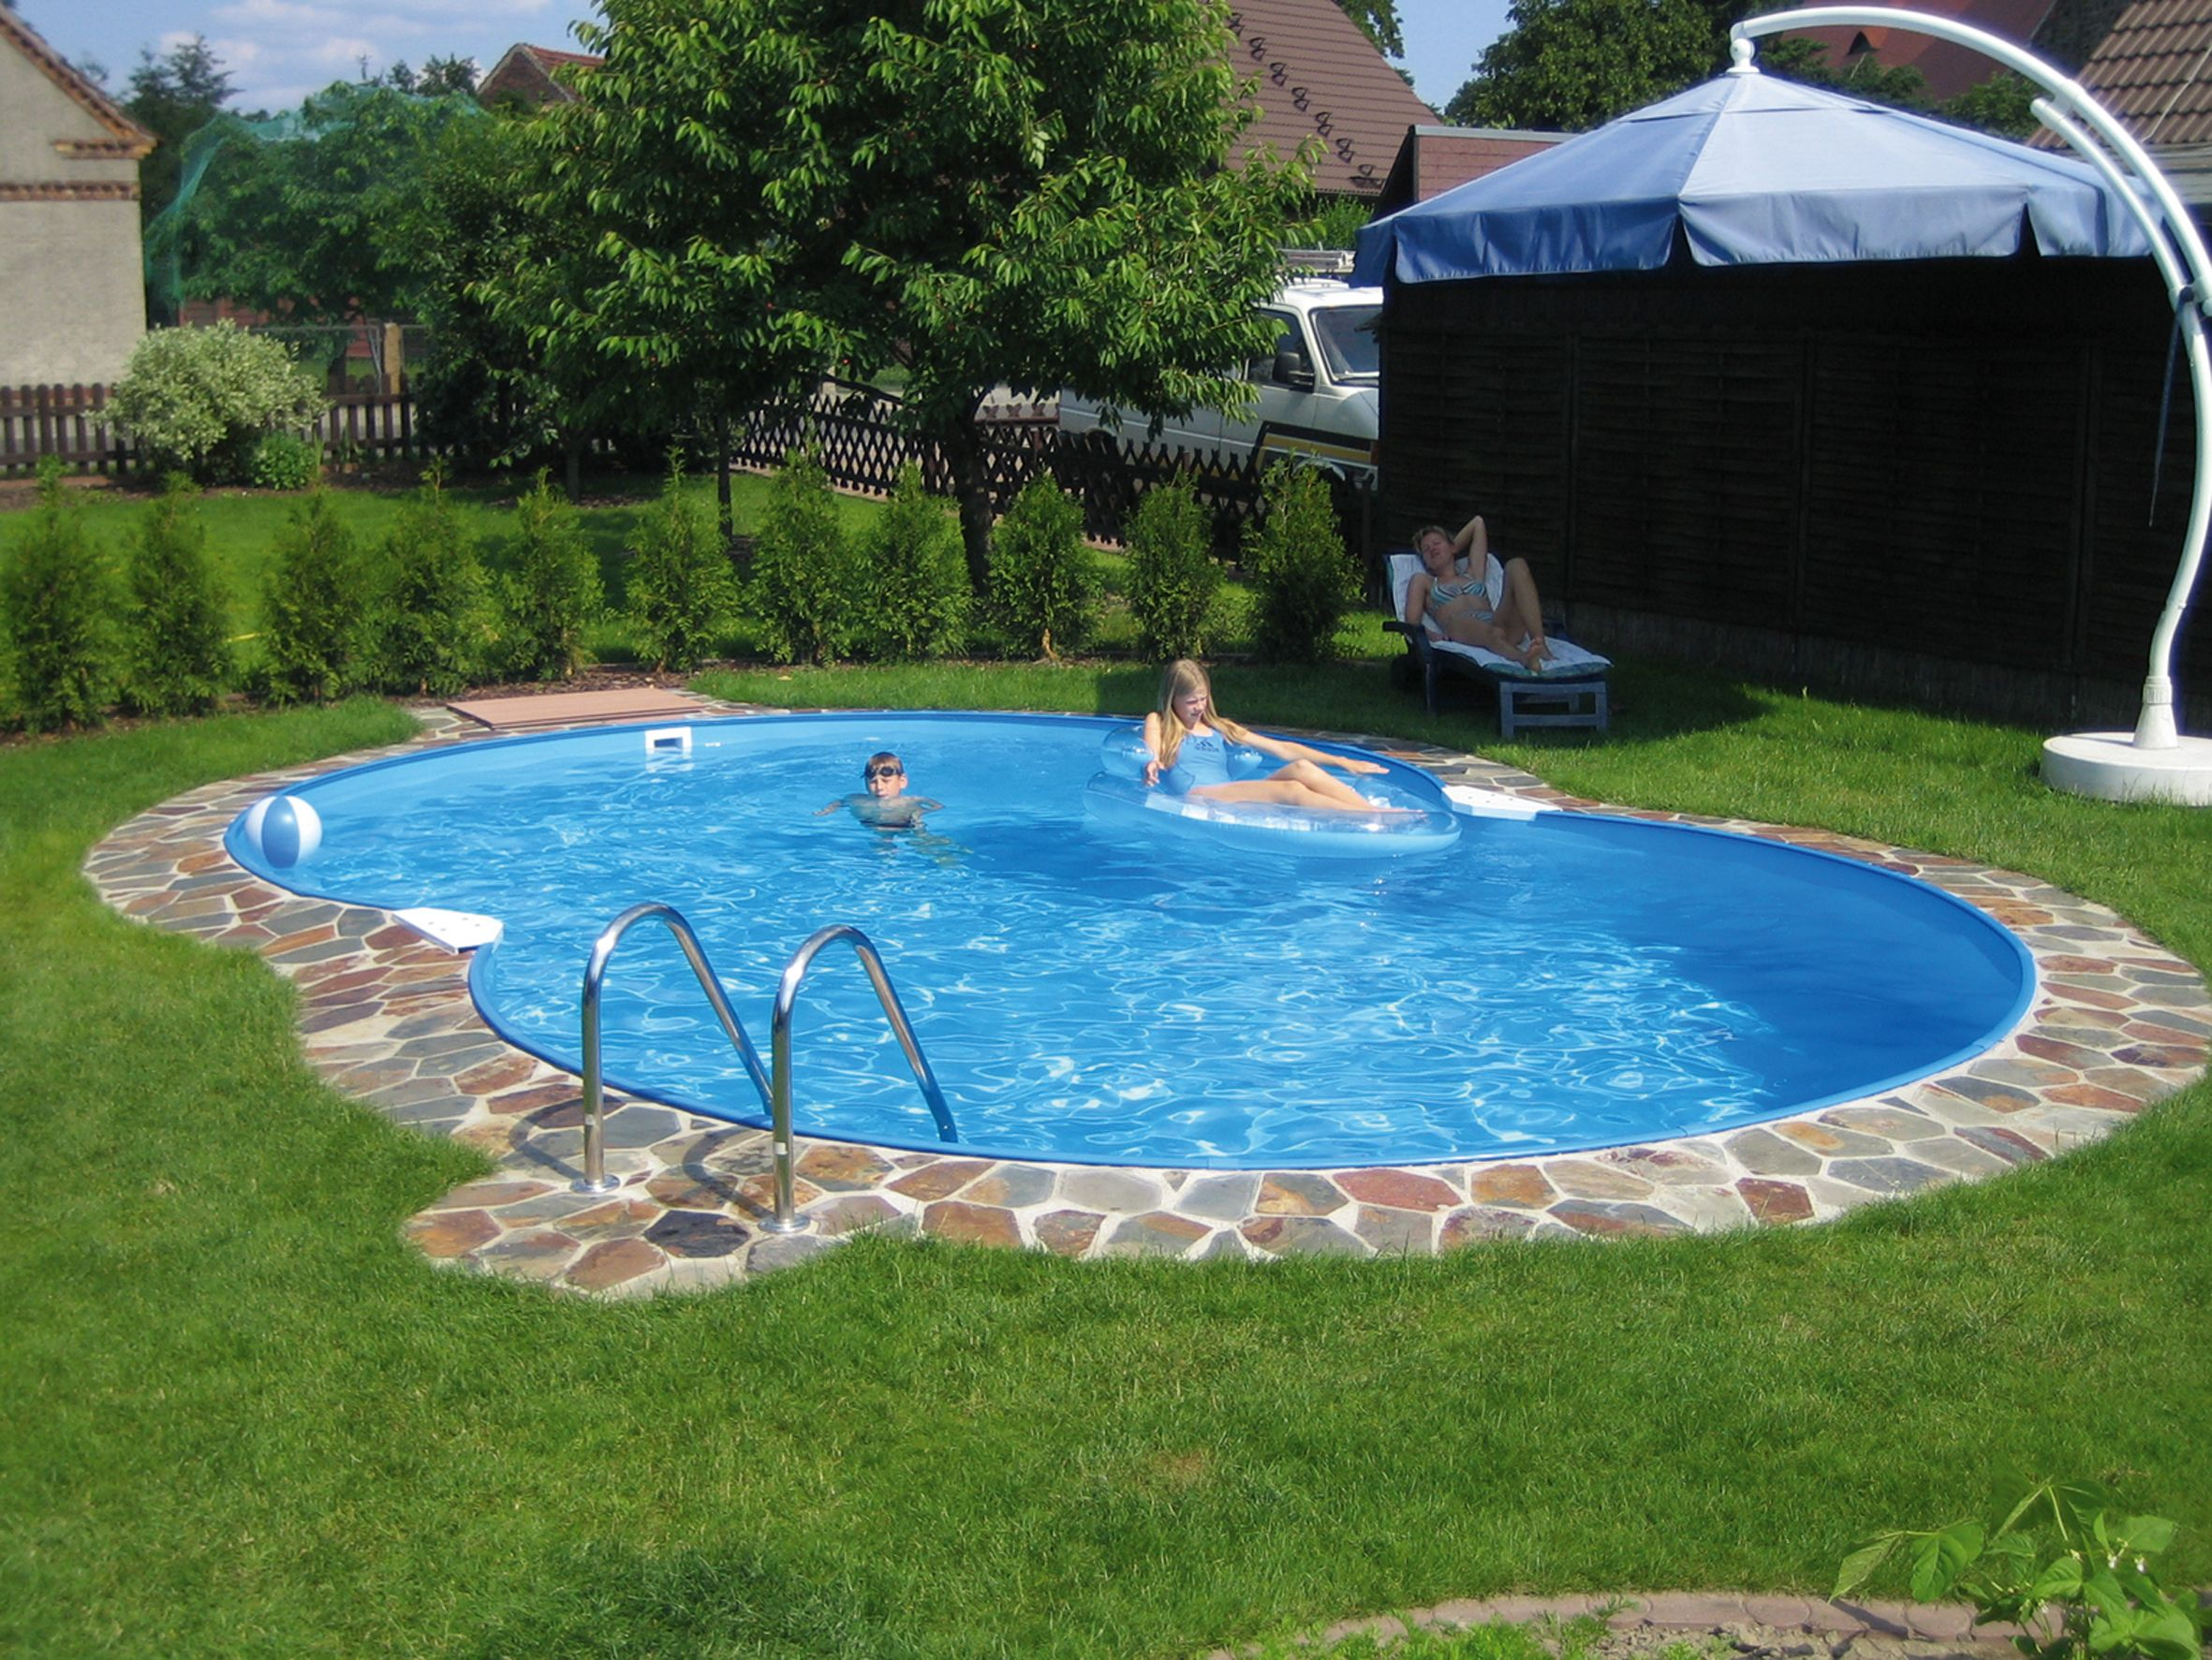 backyard landscaping ideas swimming pool design read more at wwwhomestheticsnet - Swimming Pool Designs